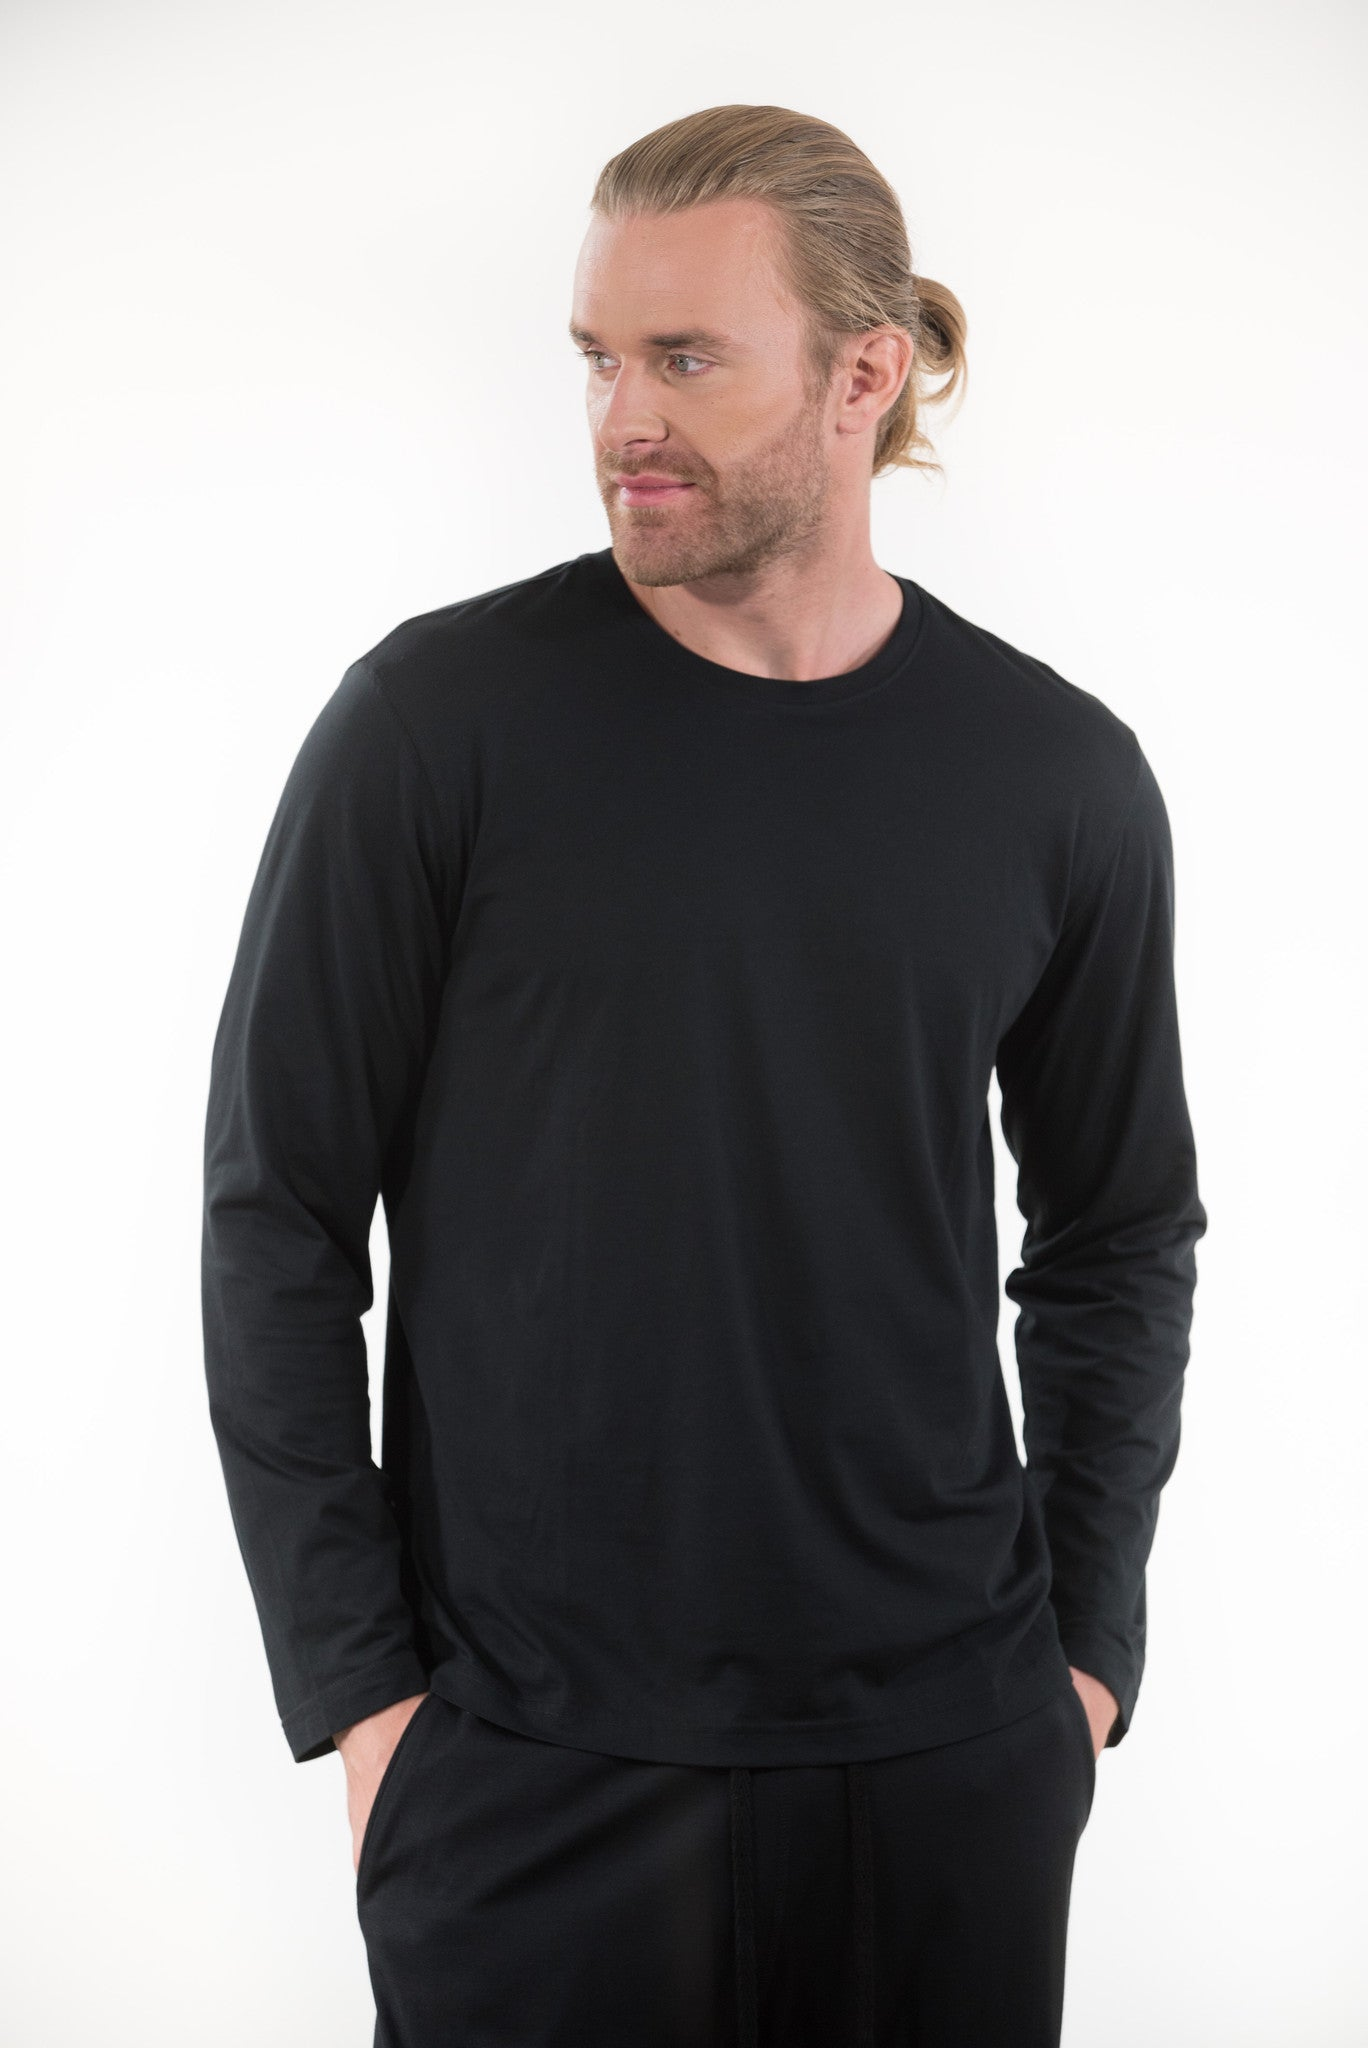 100% Peruvian Pima Cotton Replenishment Long Sleeve Crewneck